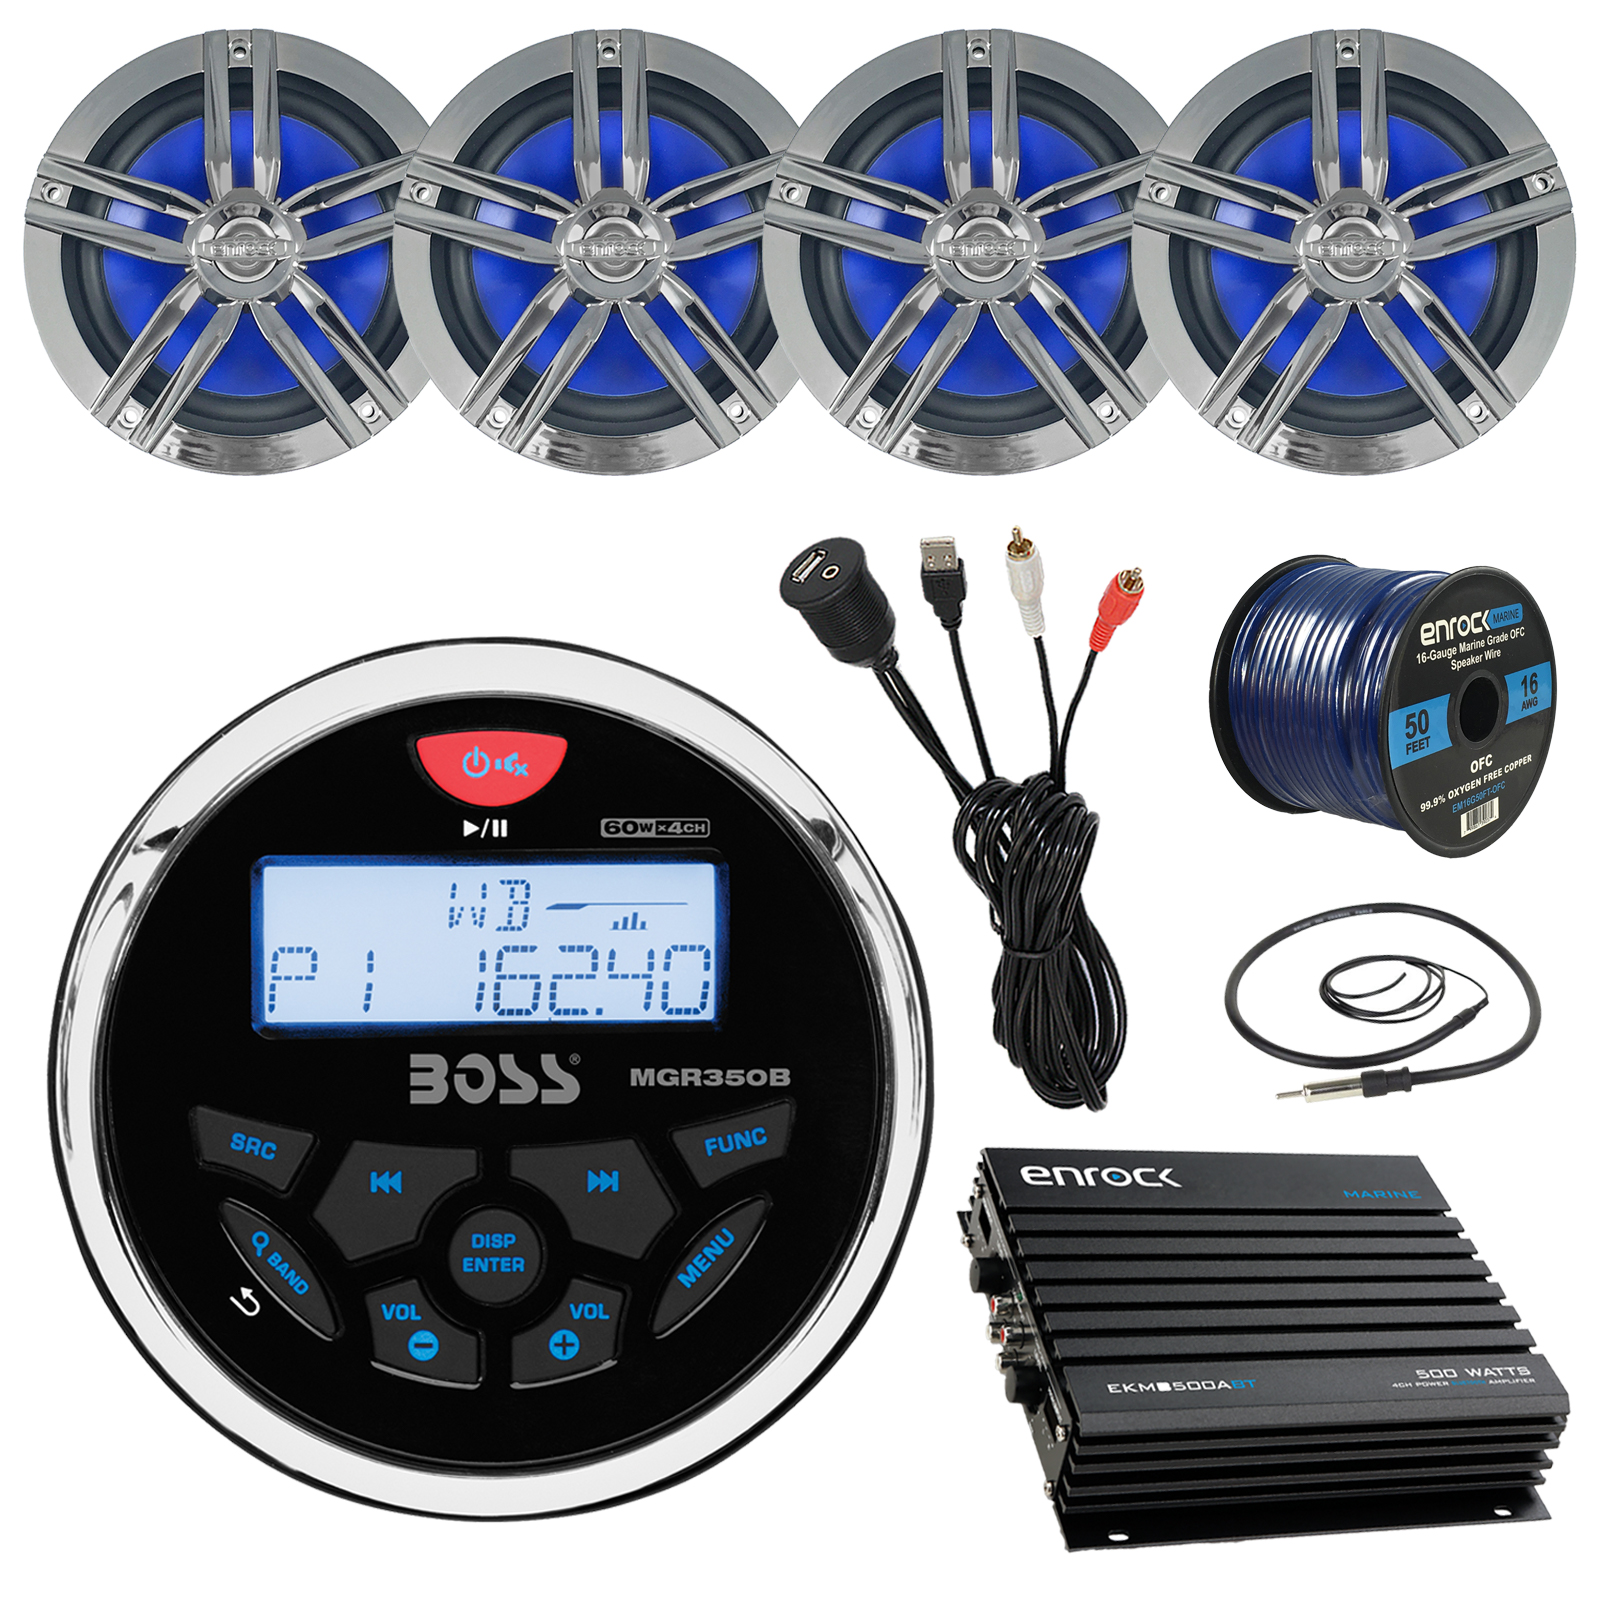 """16'-25' Bay Boat Marine System Includes: CD Bluetooth Receiver, 4 x 6.5"""" Water-Resistant Speakers, 4-Channel Amplifier, 50ft Speaker Wire, Antenna, USB Aux Interface Mount"""